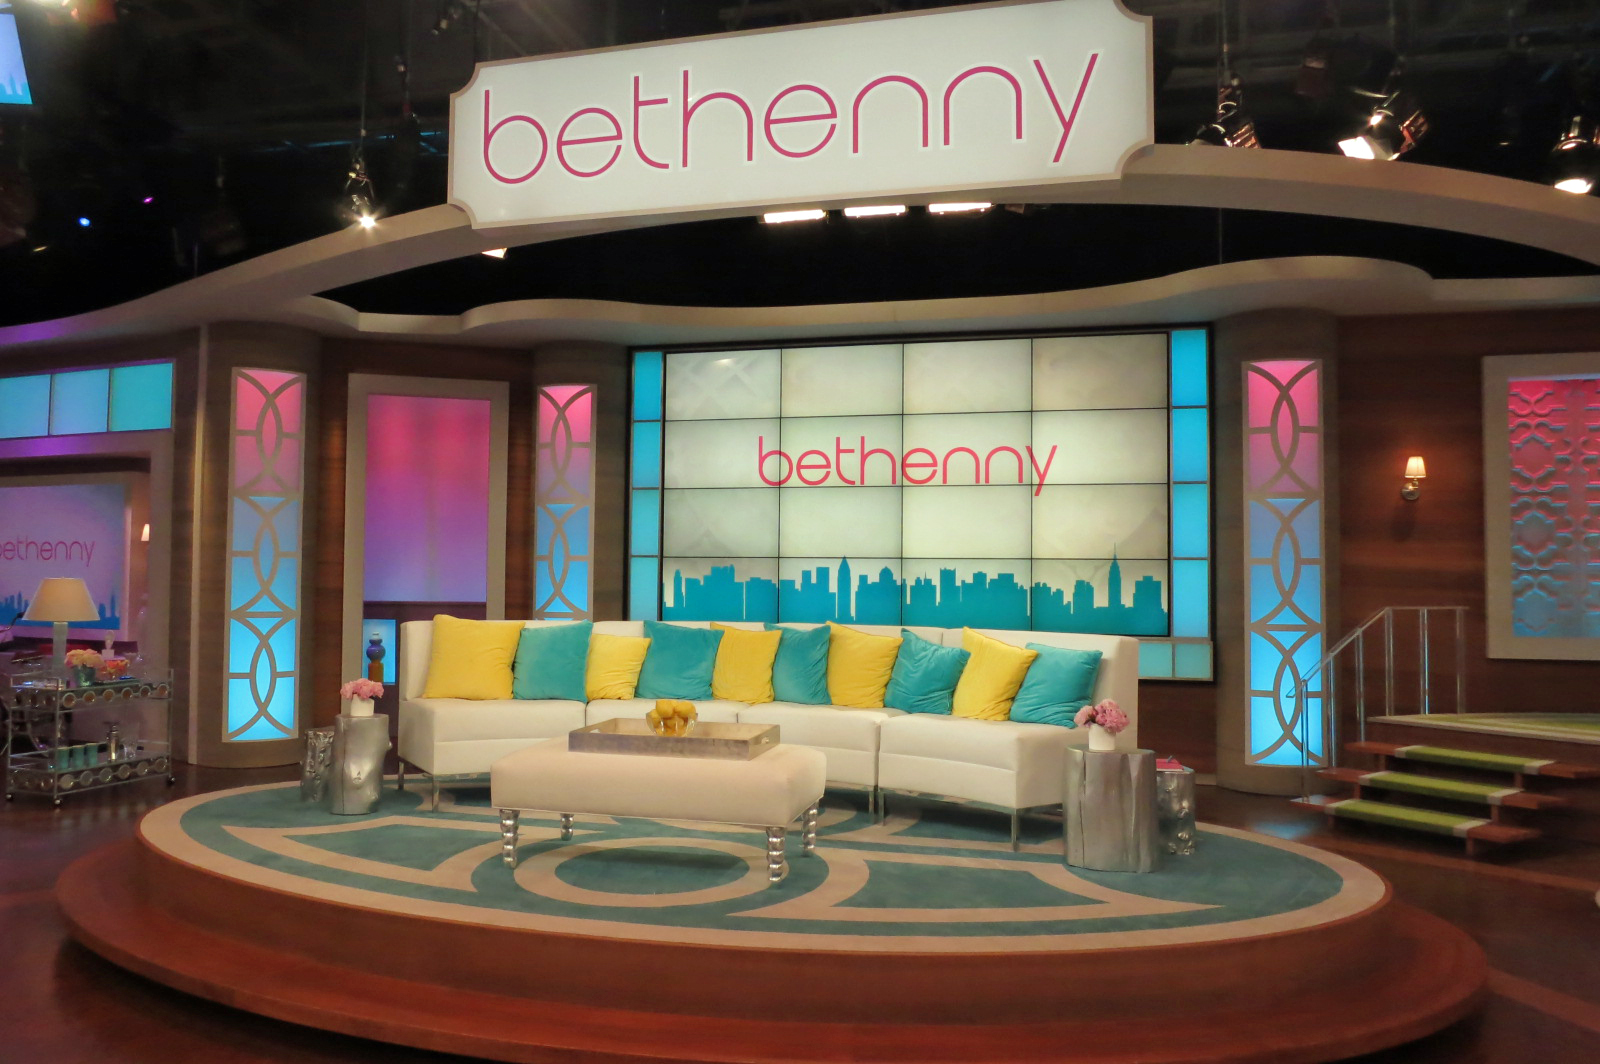 tv-lighting-design-bethenny-3